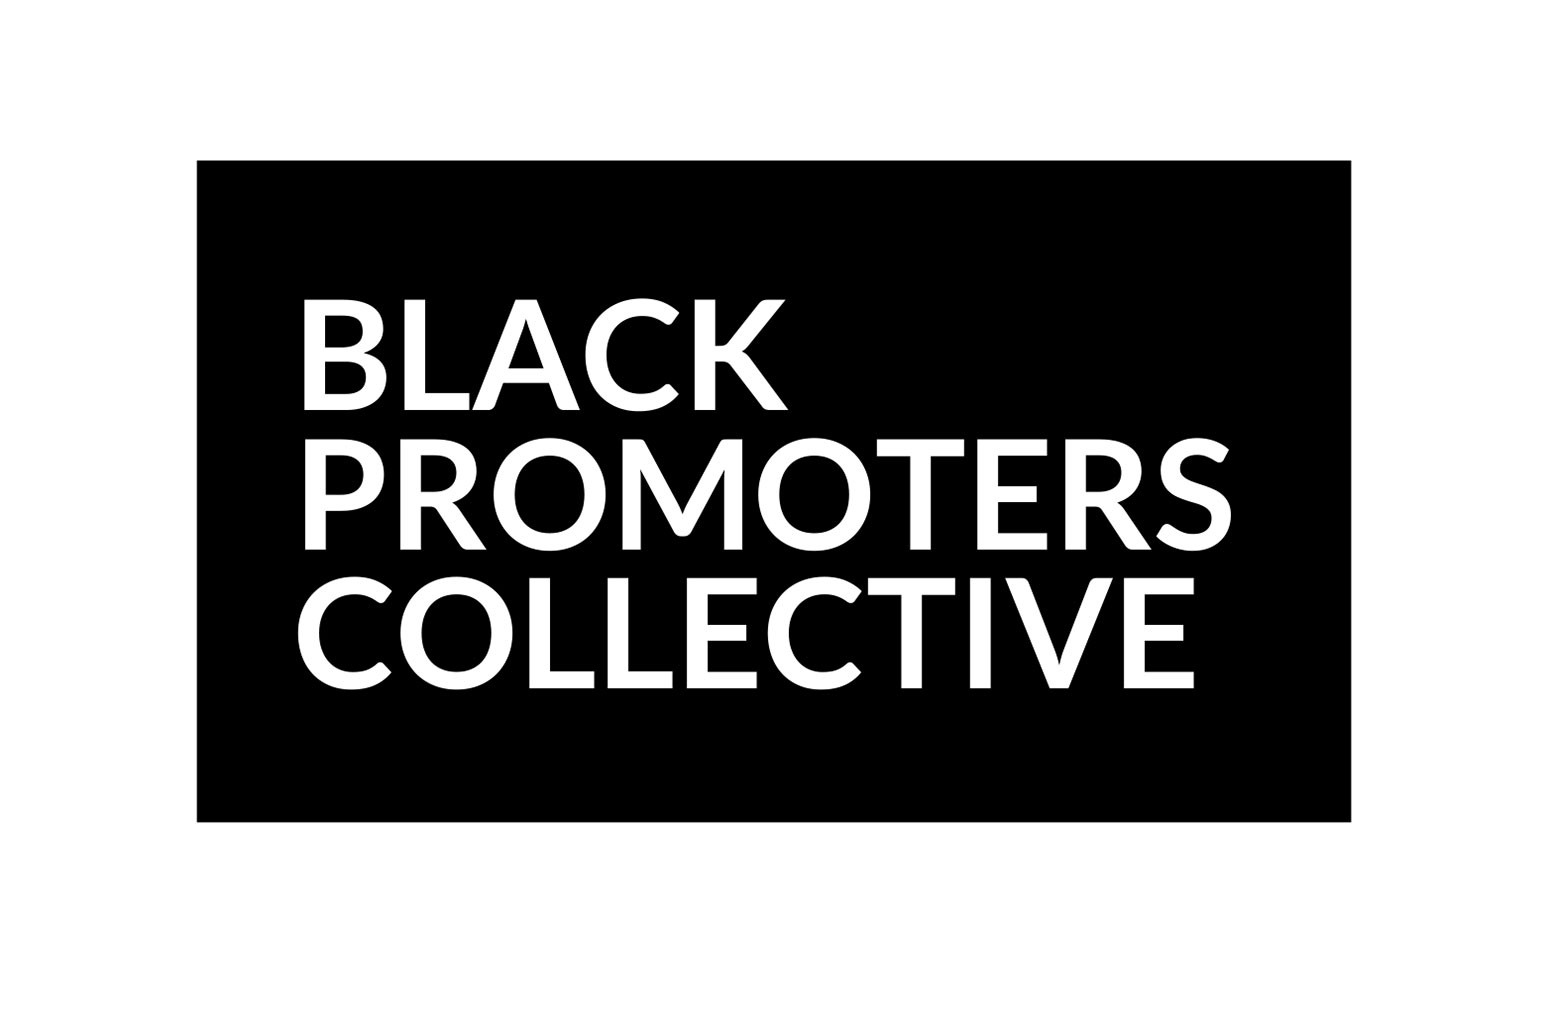 Black Promoters Collective